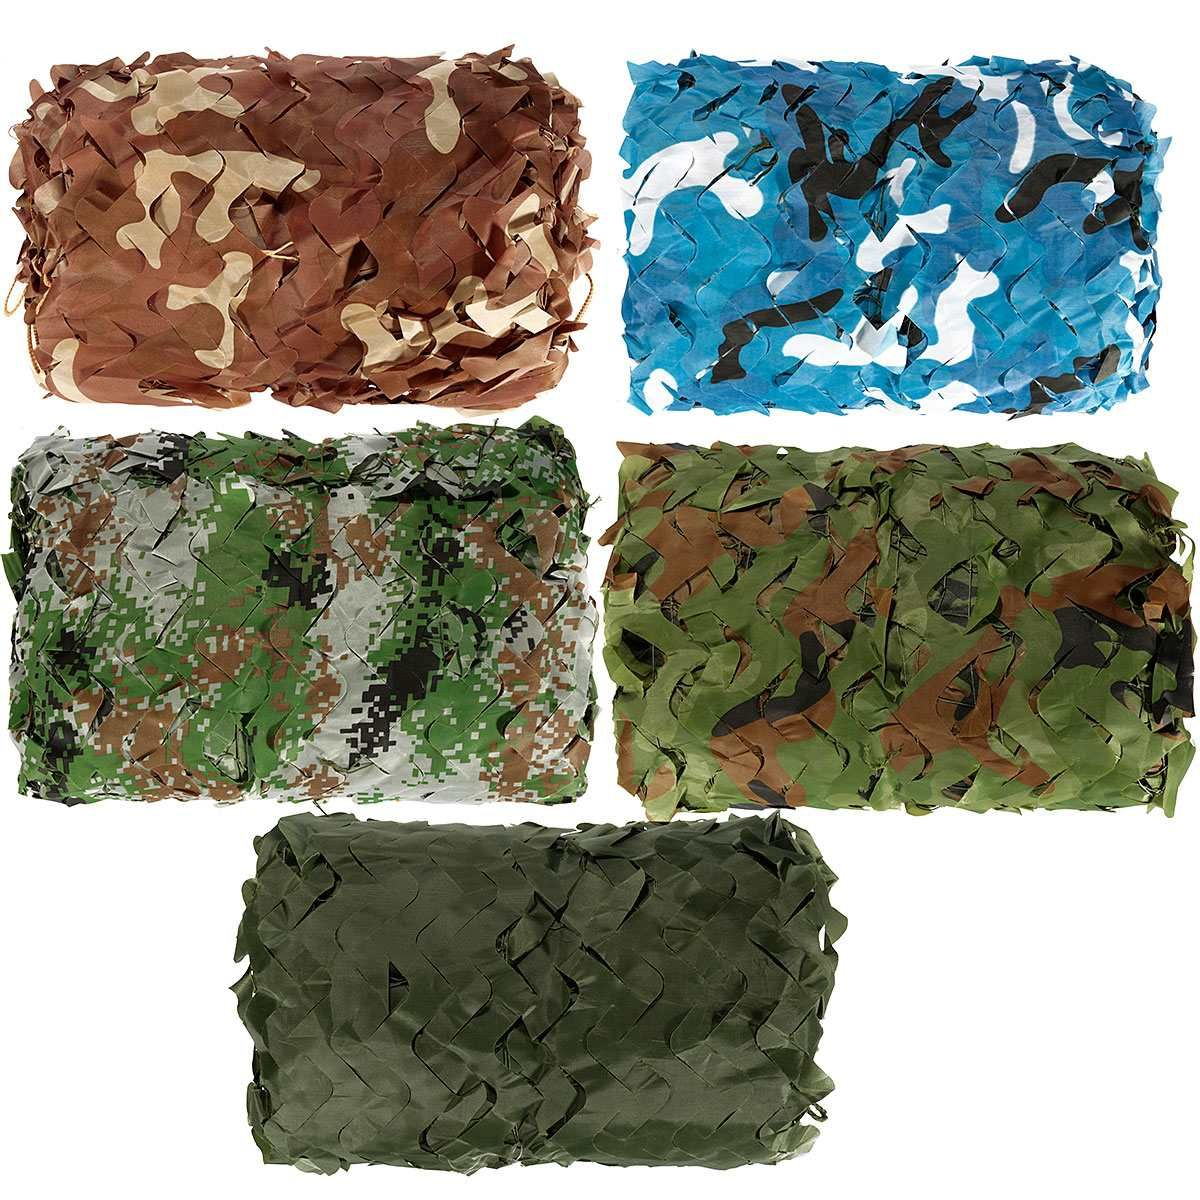 5x3m Outdoor Military Camouflage Net Camo for Hunting Covering Camping Woodlands Leaves Hide Sun Shelter Car-cover